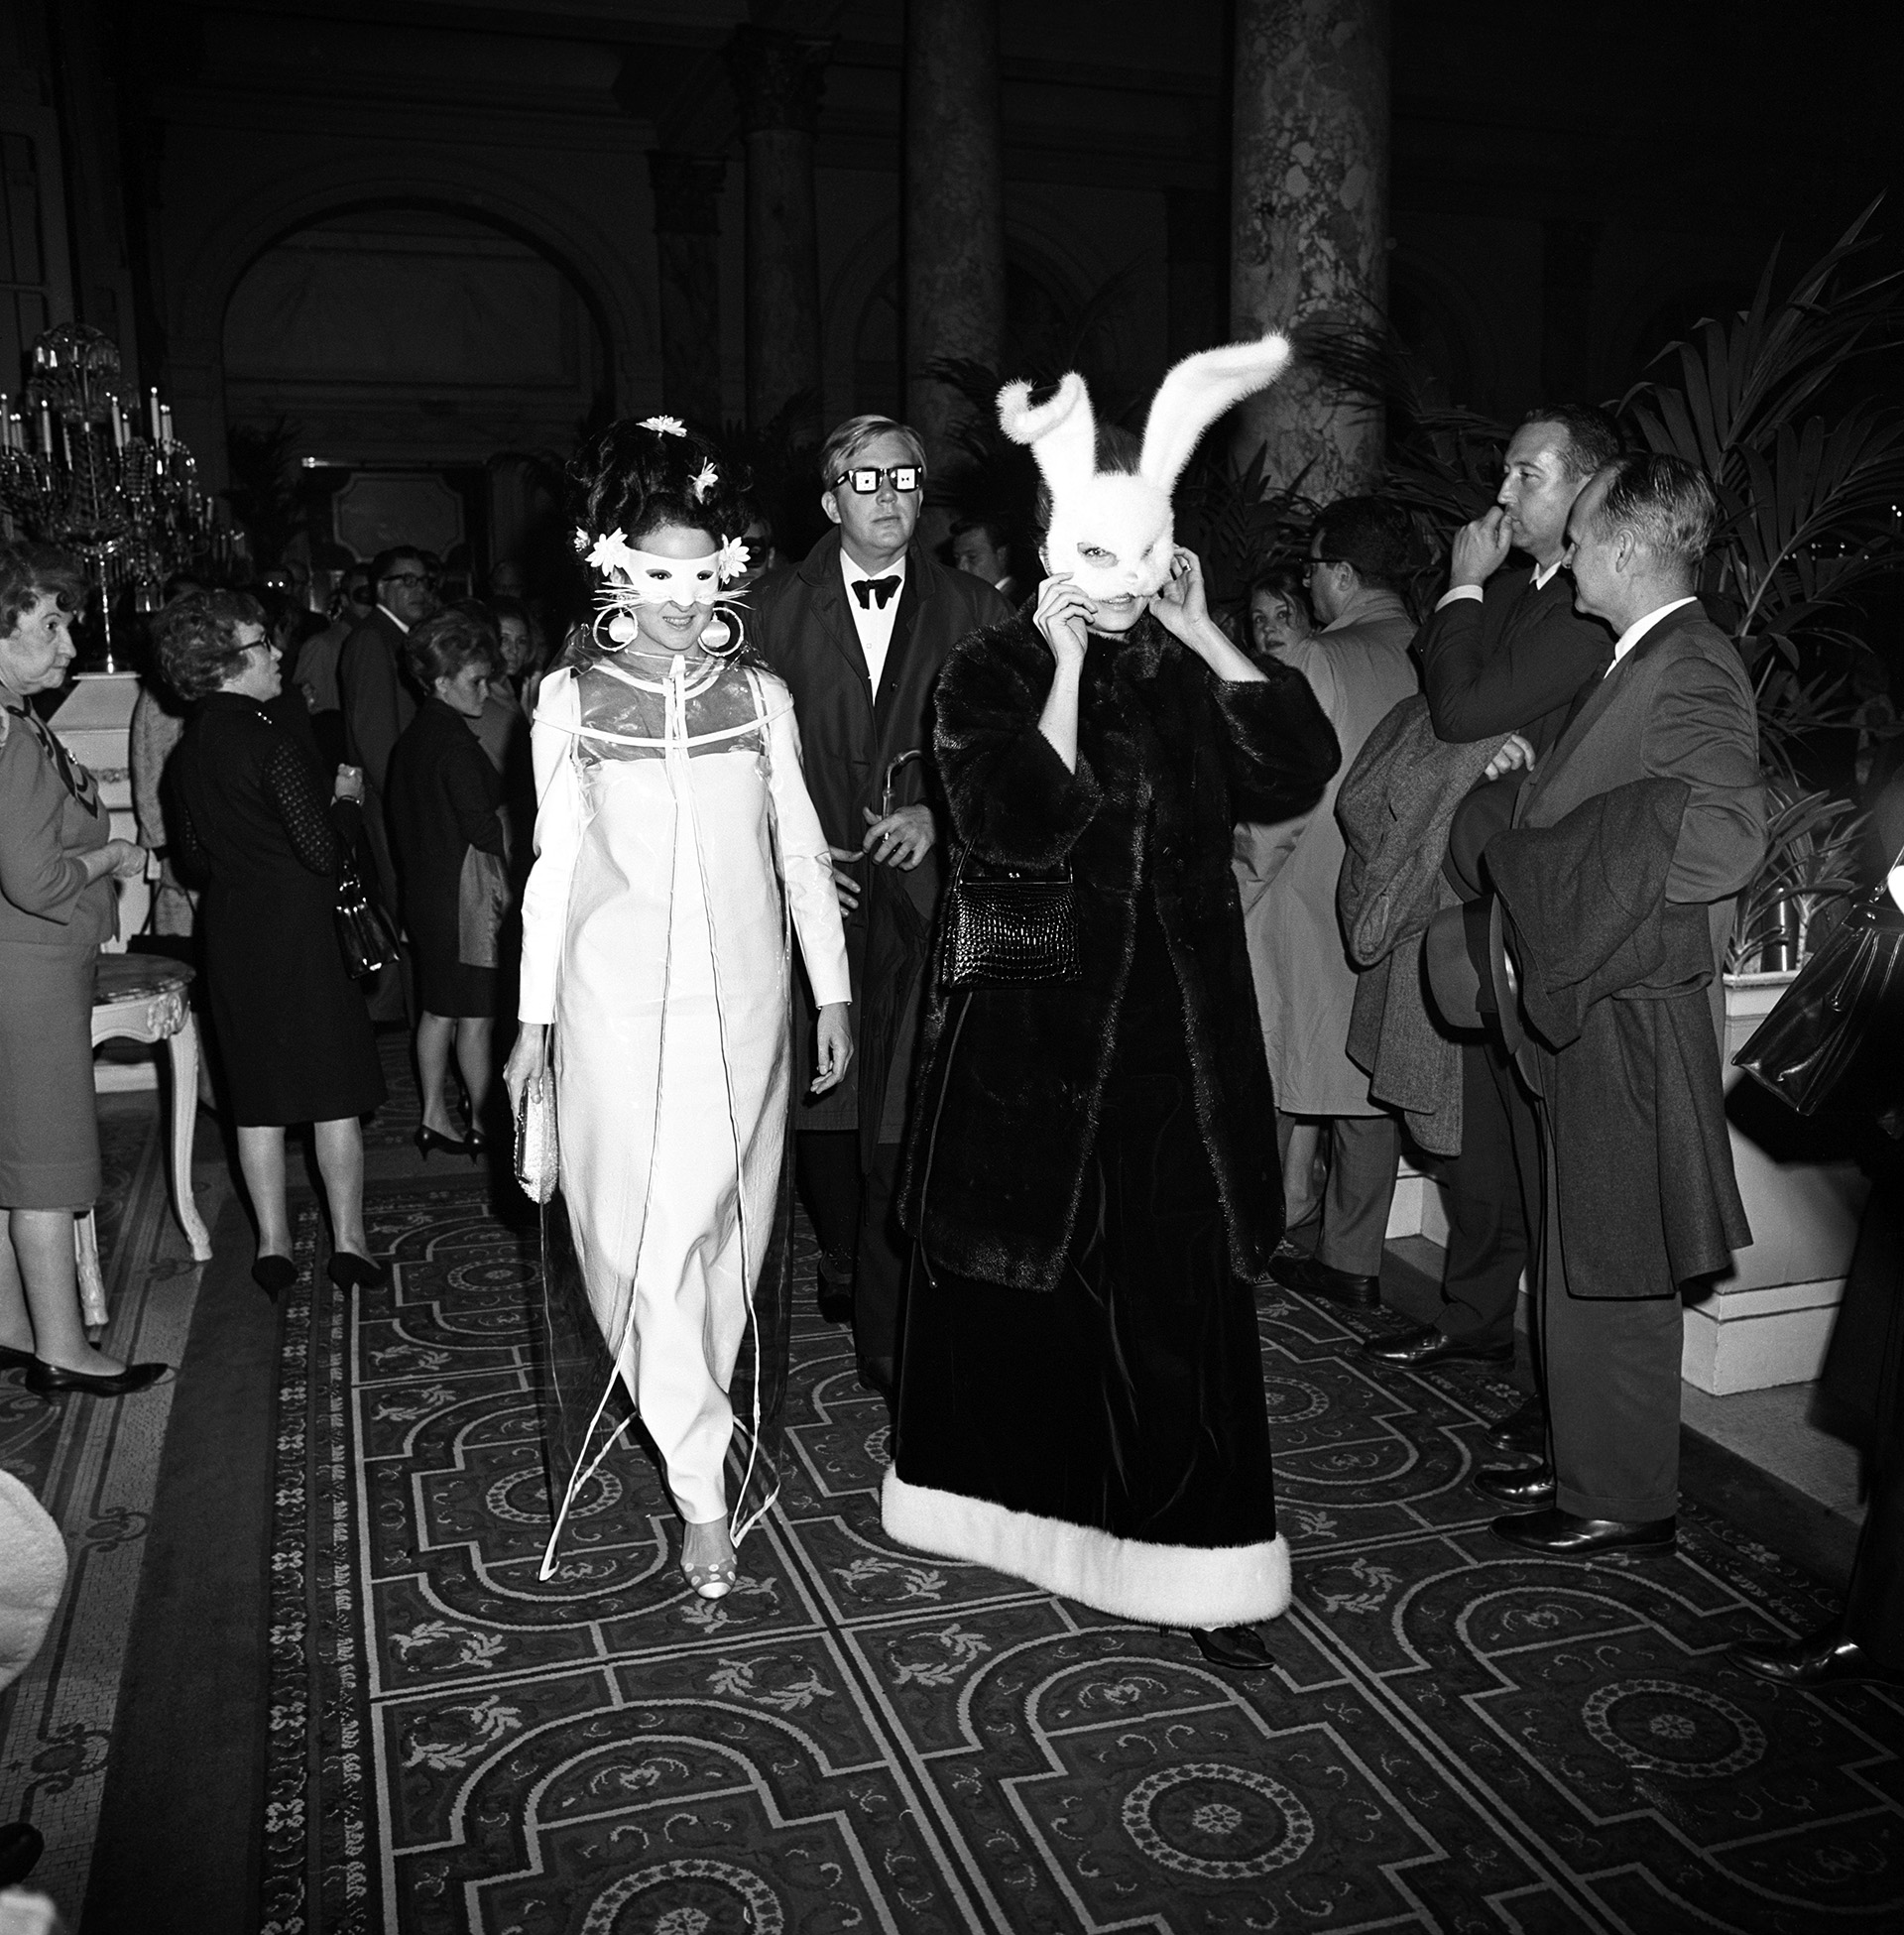 Candace Bergen (right) and another woman arriving at Truman Capote's Black and White Ball in the Grand Ballroom at the Plaza Hotel in New York City, 1966. (Credit: Morrison Ray ''Scotty/Penske Media/REX/Shutterstock)